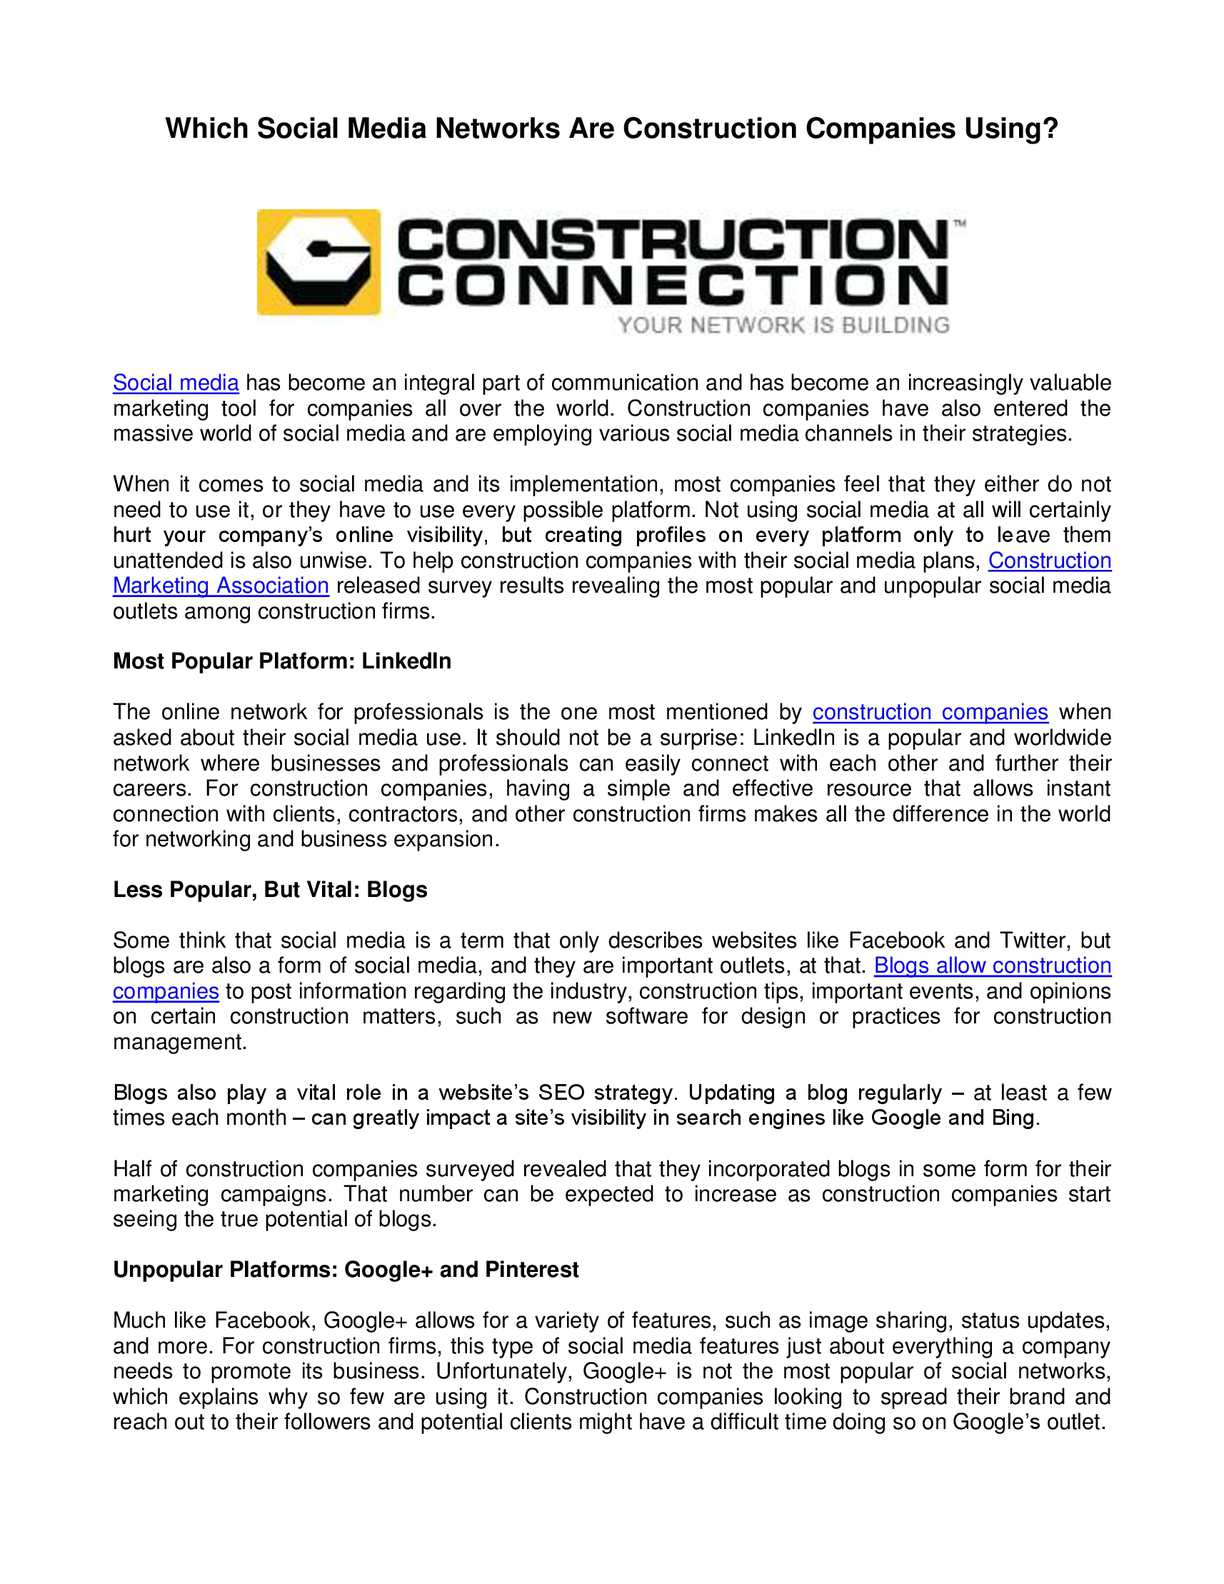 Calaméo - Which Social Media Networks Are Construction Companies Using?